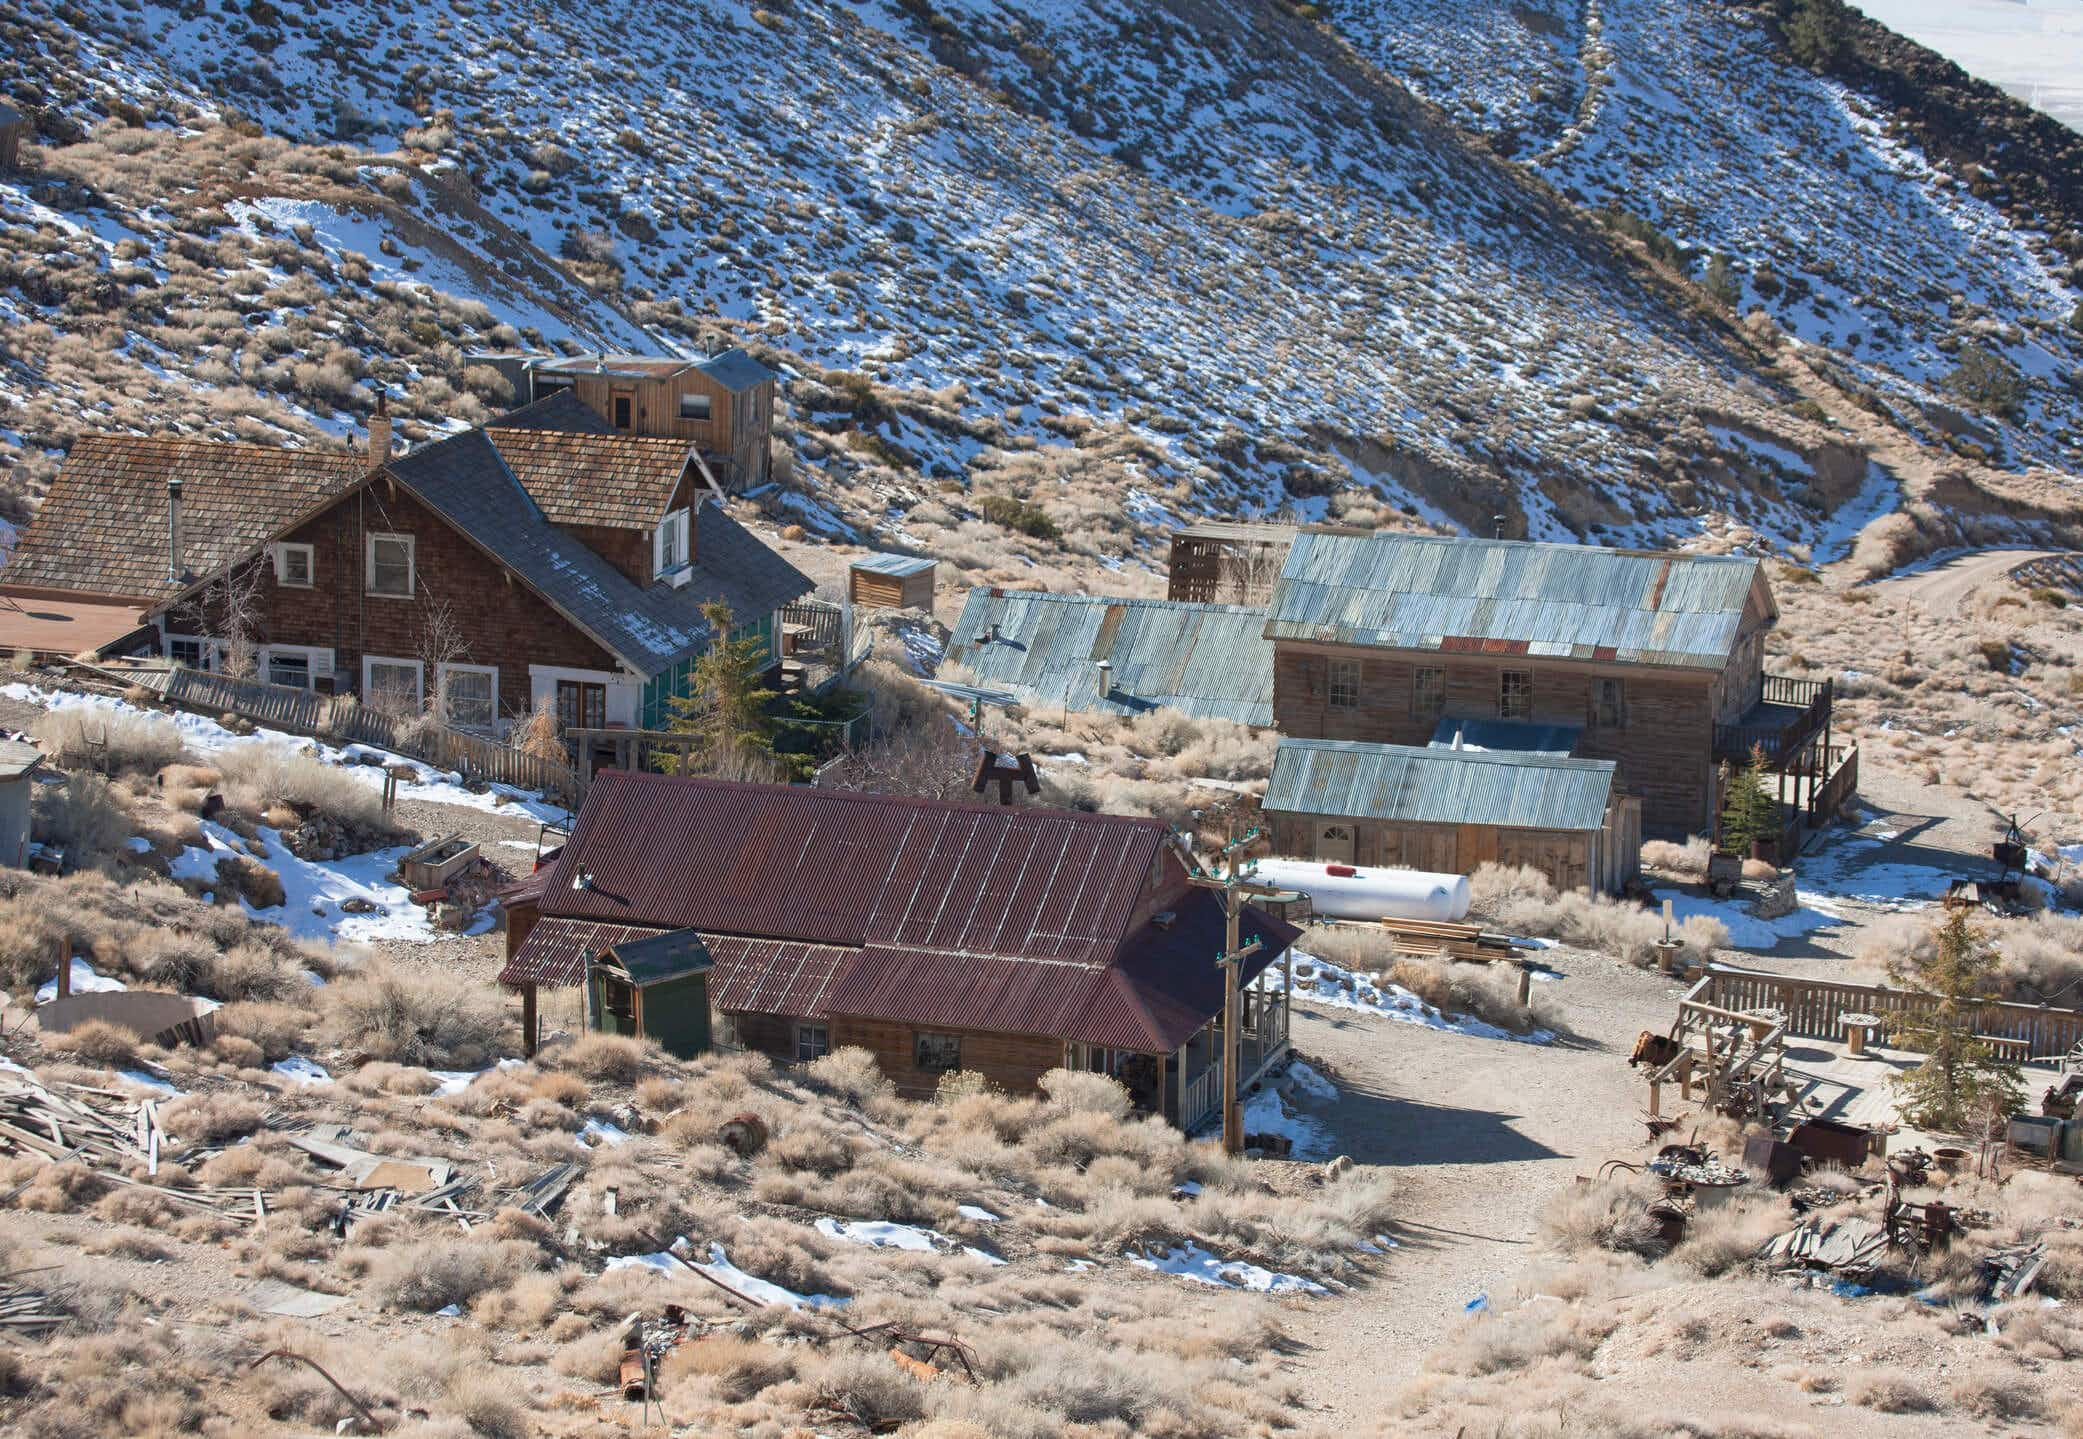 You can buy your own ghost town in California